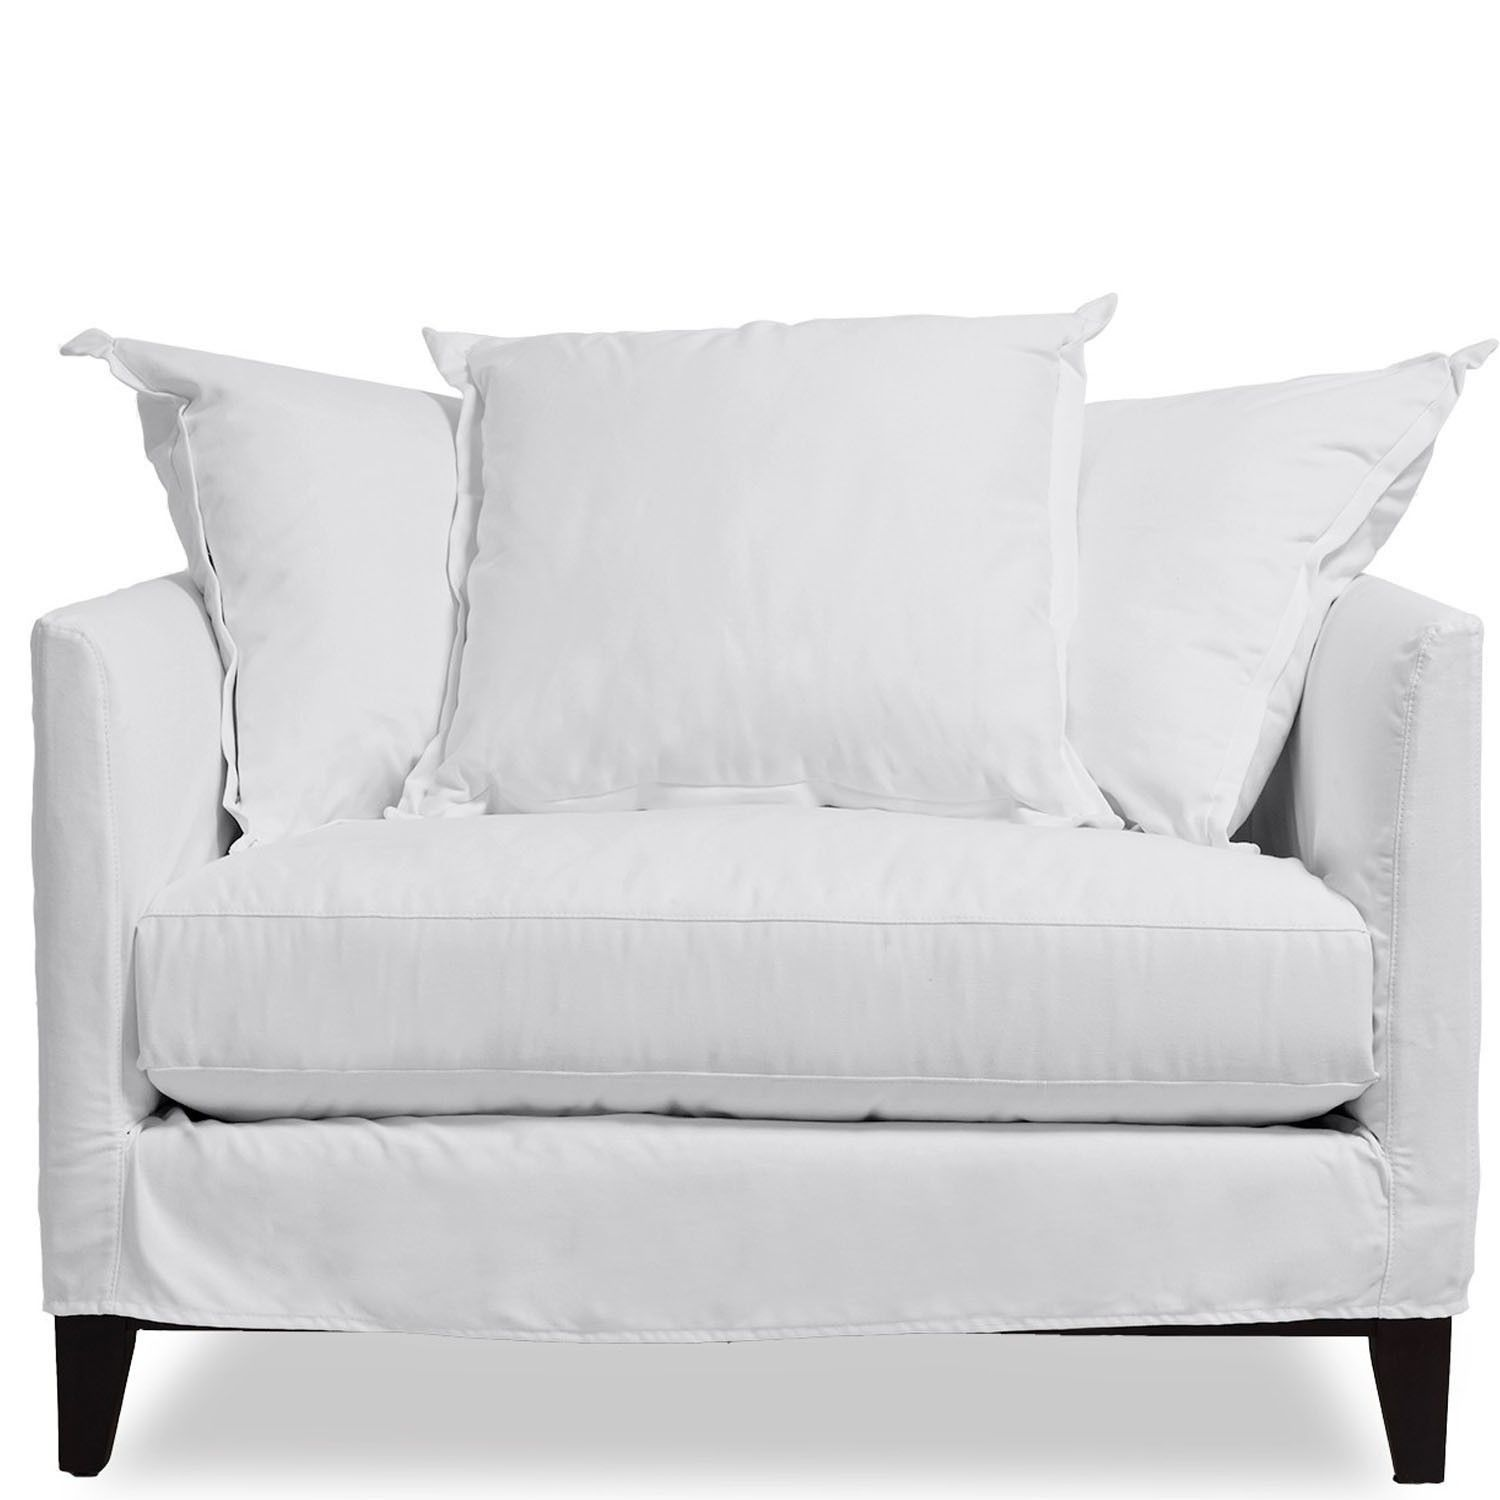 Dolly Slipcover Sofa Oat Crypton Apartment Decor